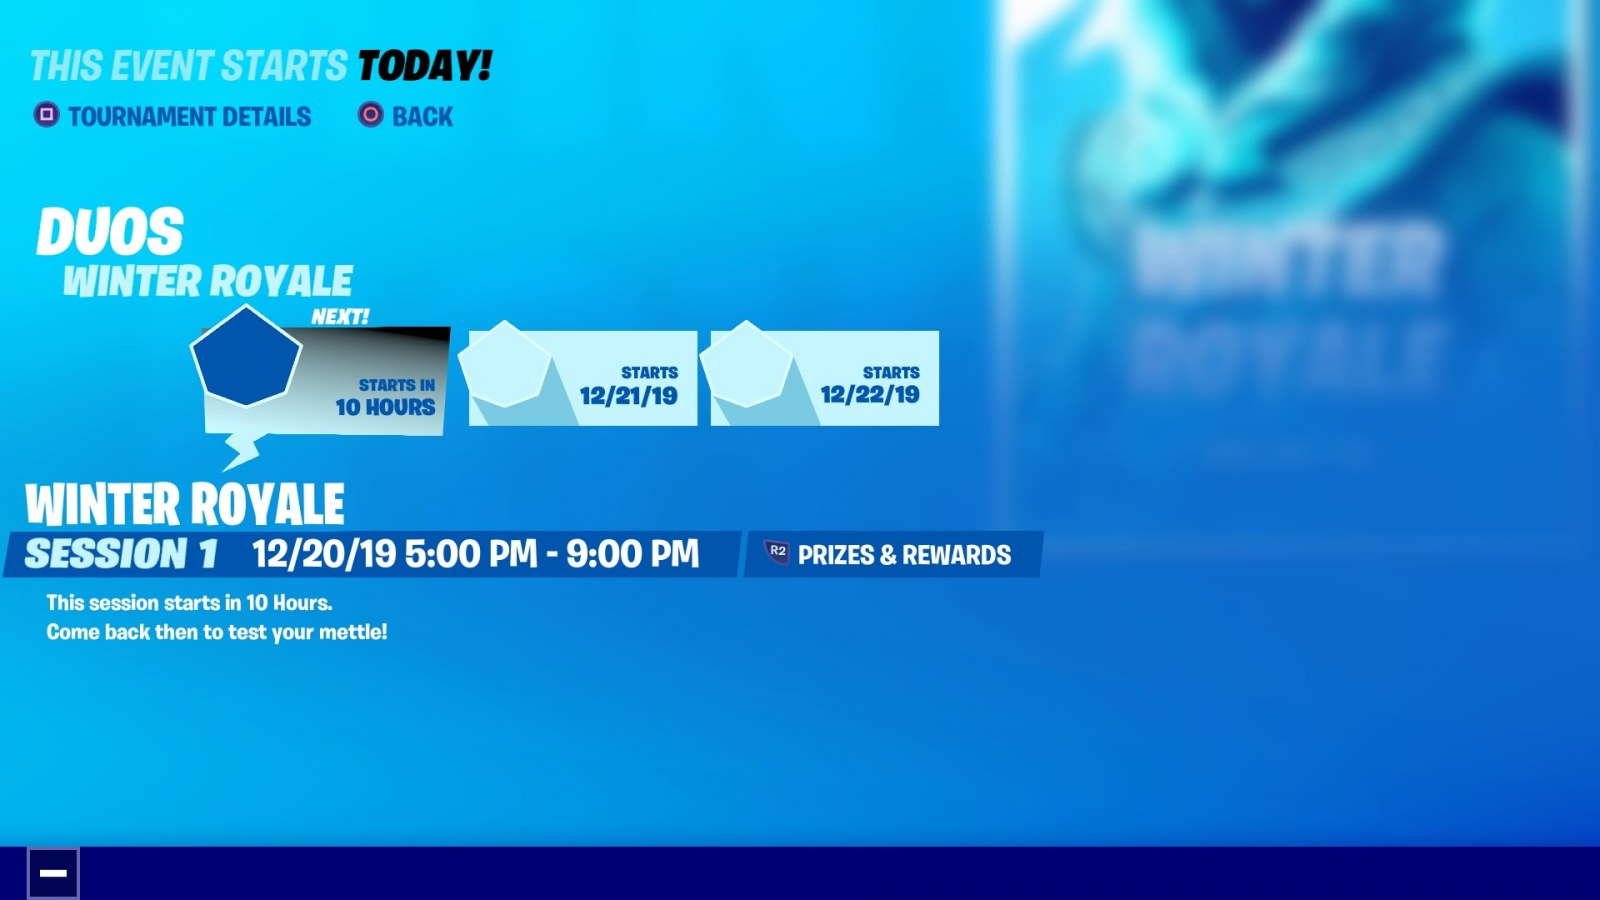 Heat 1 Fortnite Winter Royale Fortnite Winter Royale 2019 Start Time Standings Rules Duos How To Watch